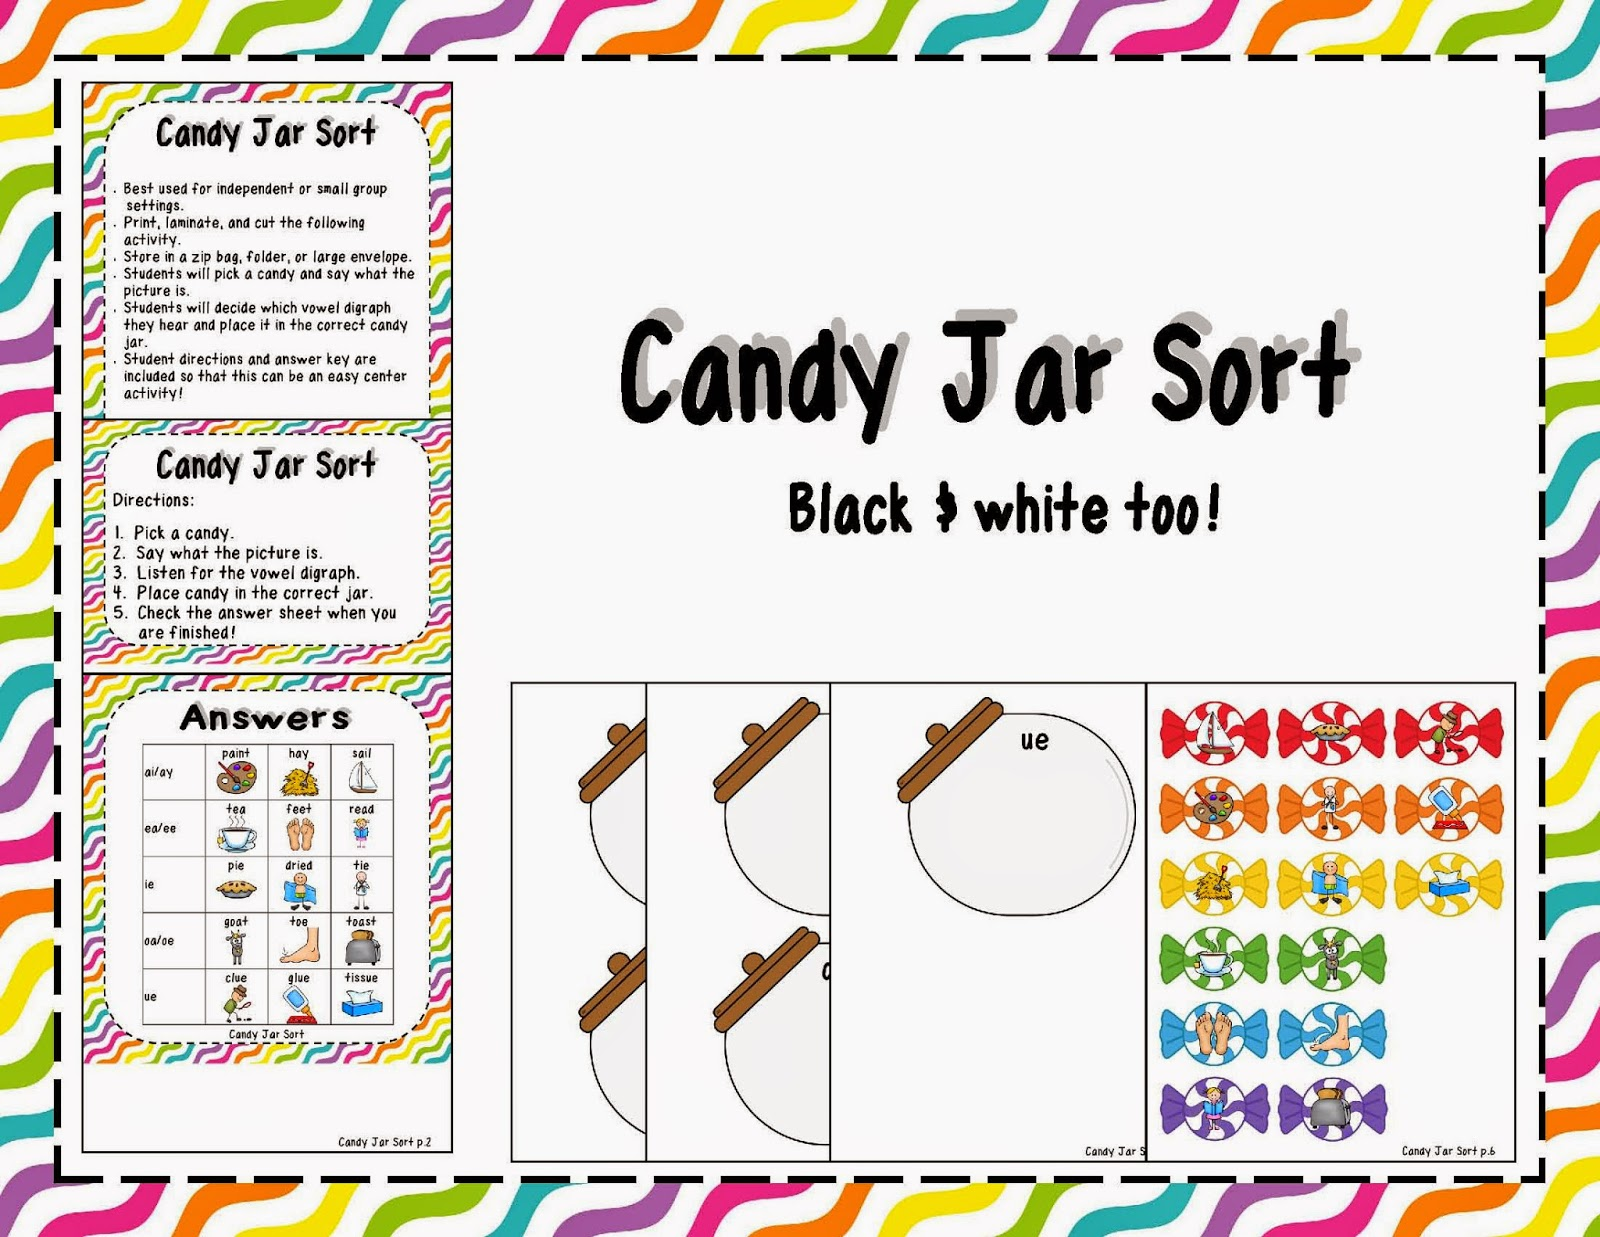 http://www.teacherspayteachers.com/Product/Vowel-Digraphs-Sweet-Treats-1314365